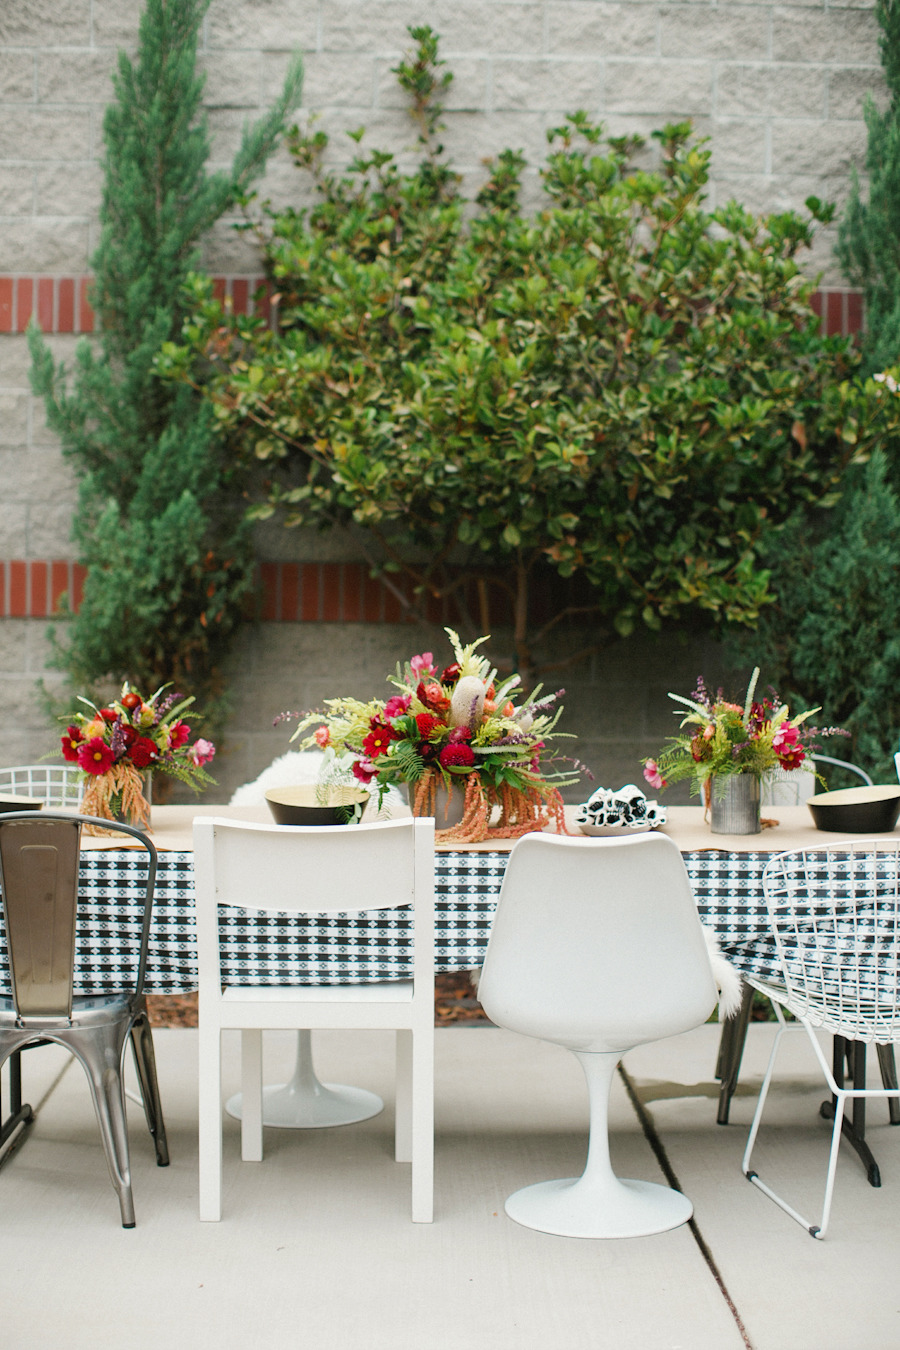 50 outdoor party ideas you should try out this summer for Home decor centerpieces